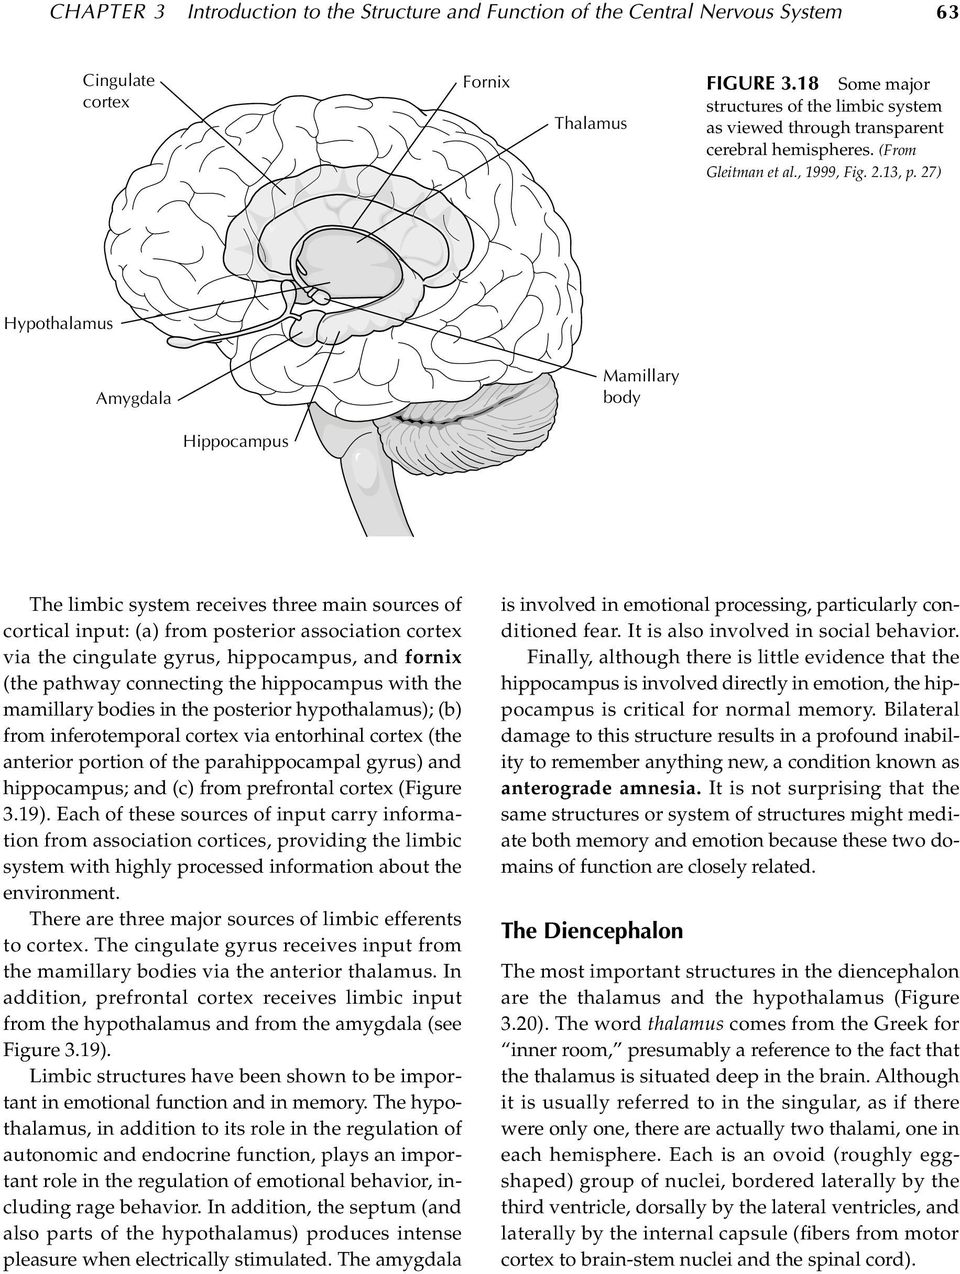 27) Hypothalamus Amygdala Mamillary body Hippocampus The limbic system receives three main sources of cortical input: (a) from posterior association via the cingulate, hippocampus, and fornix (the